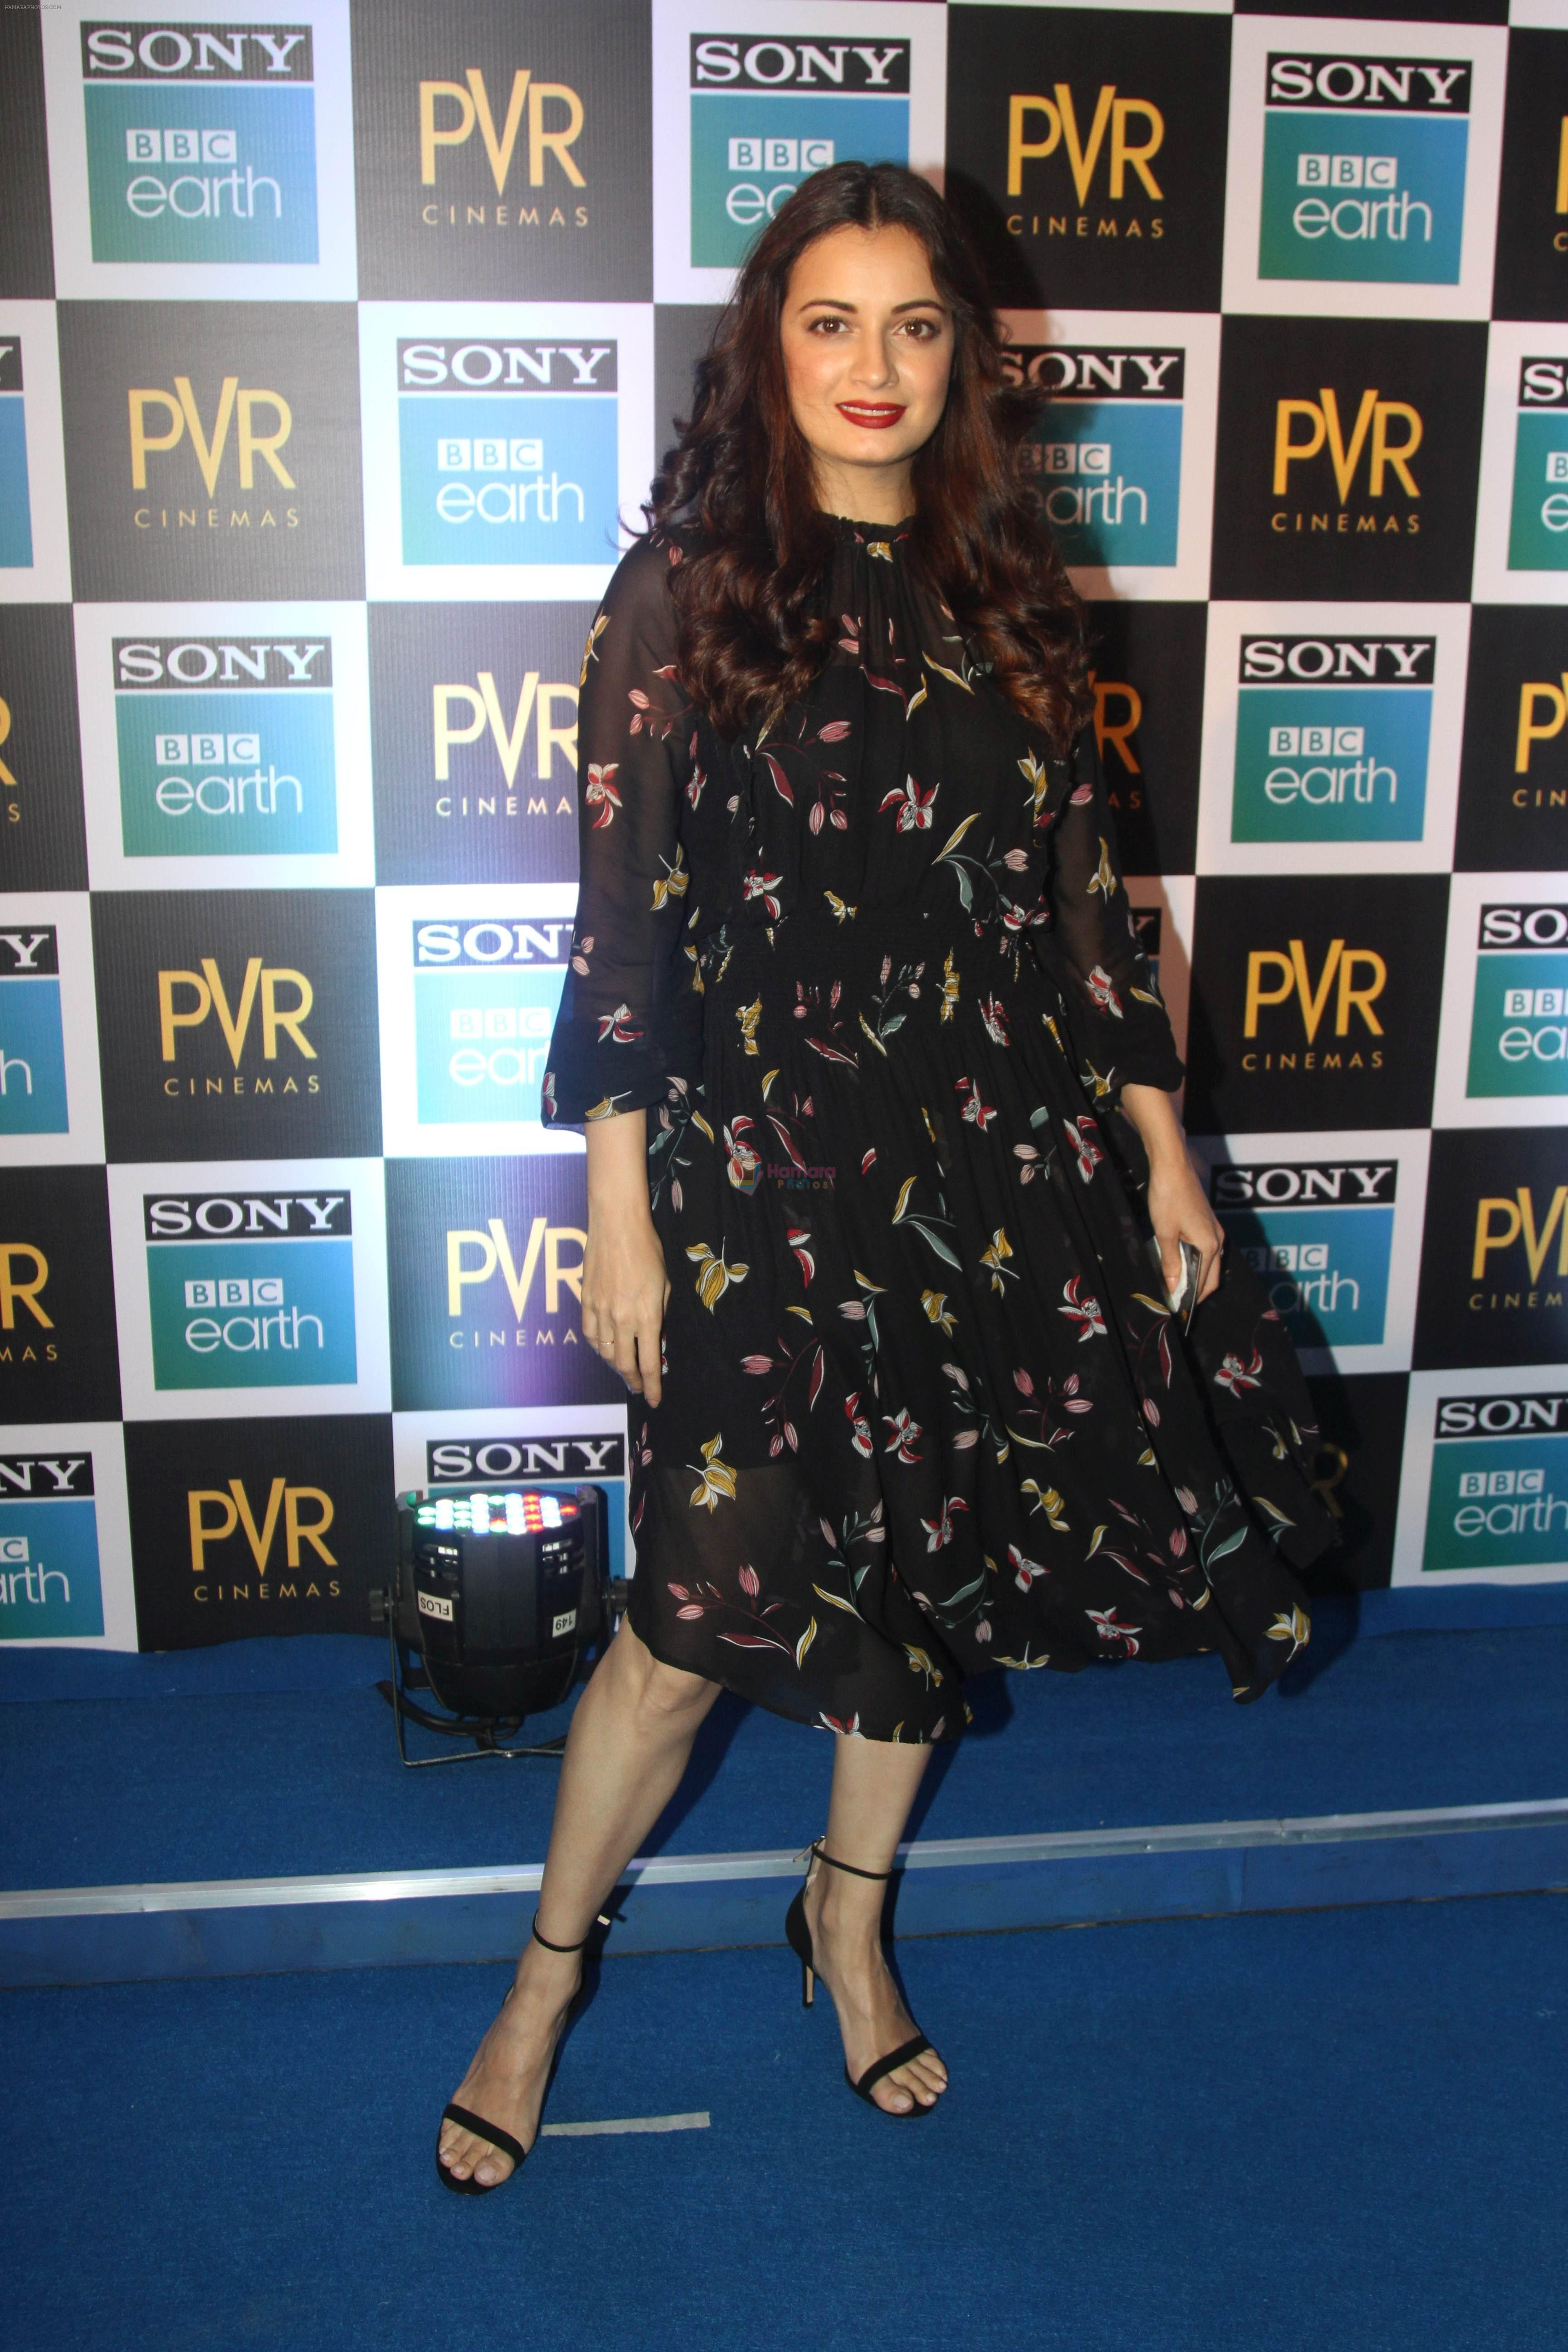 Dia Mirza at the Screening of Sony BBC Earth's film Blue Planet 2 at pvr icon in andheri on 15th May 2018